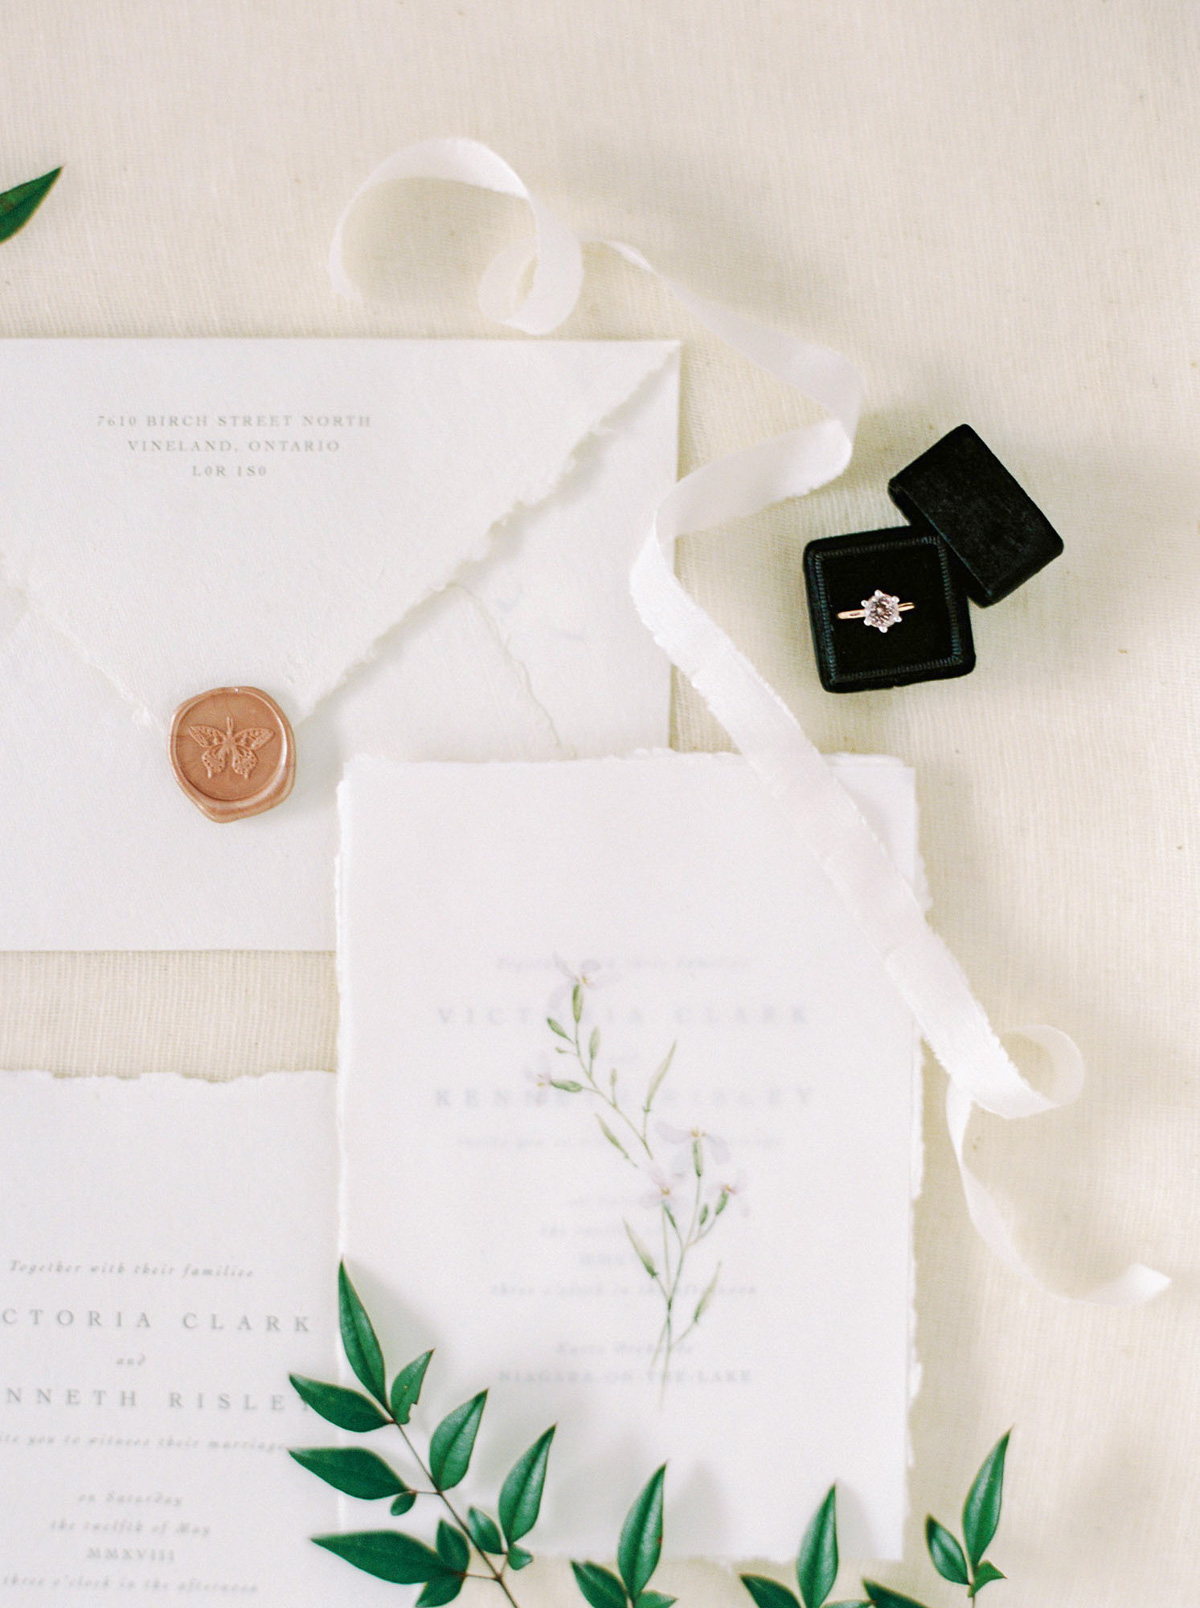 will-reid-photo-vineyard-bride-swish-list-kurtz-orchards-market-niagara-on-the-lake-wedding-editorial-31.jpg